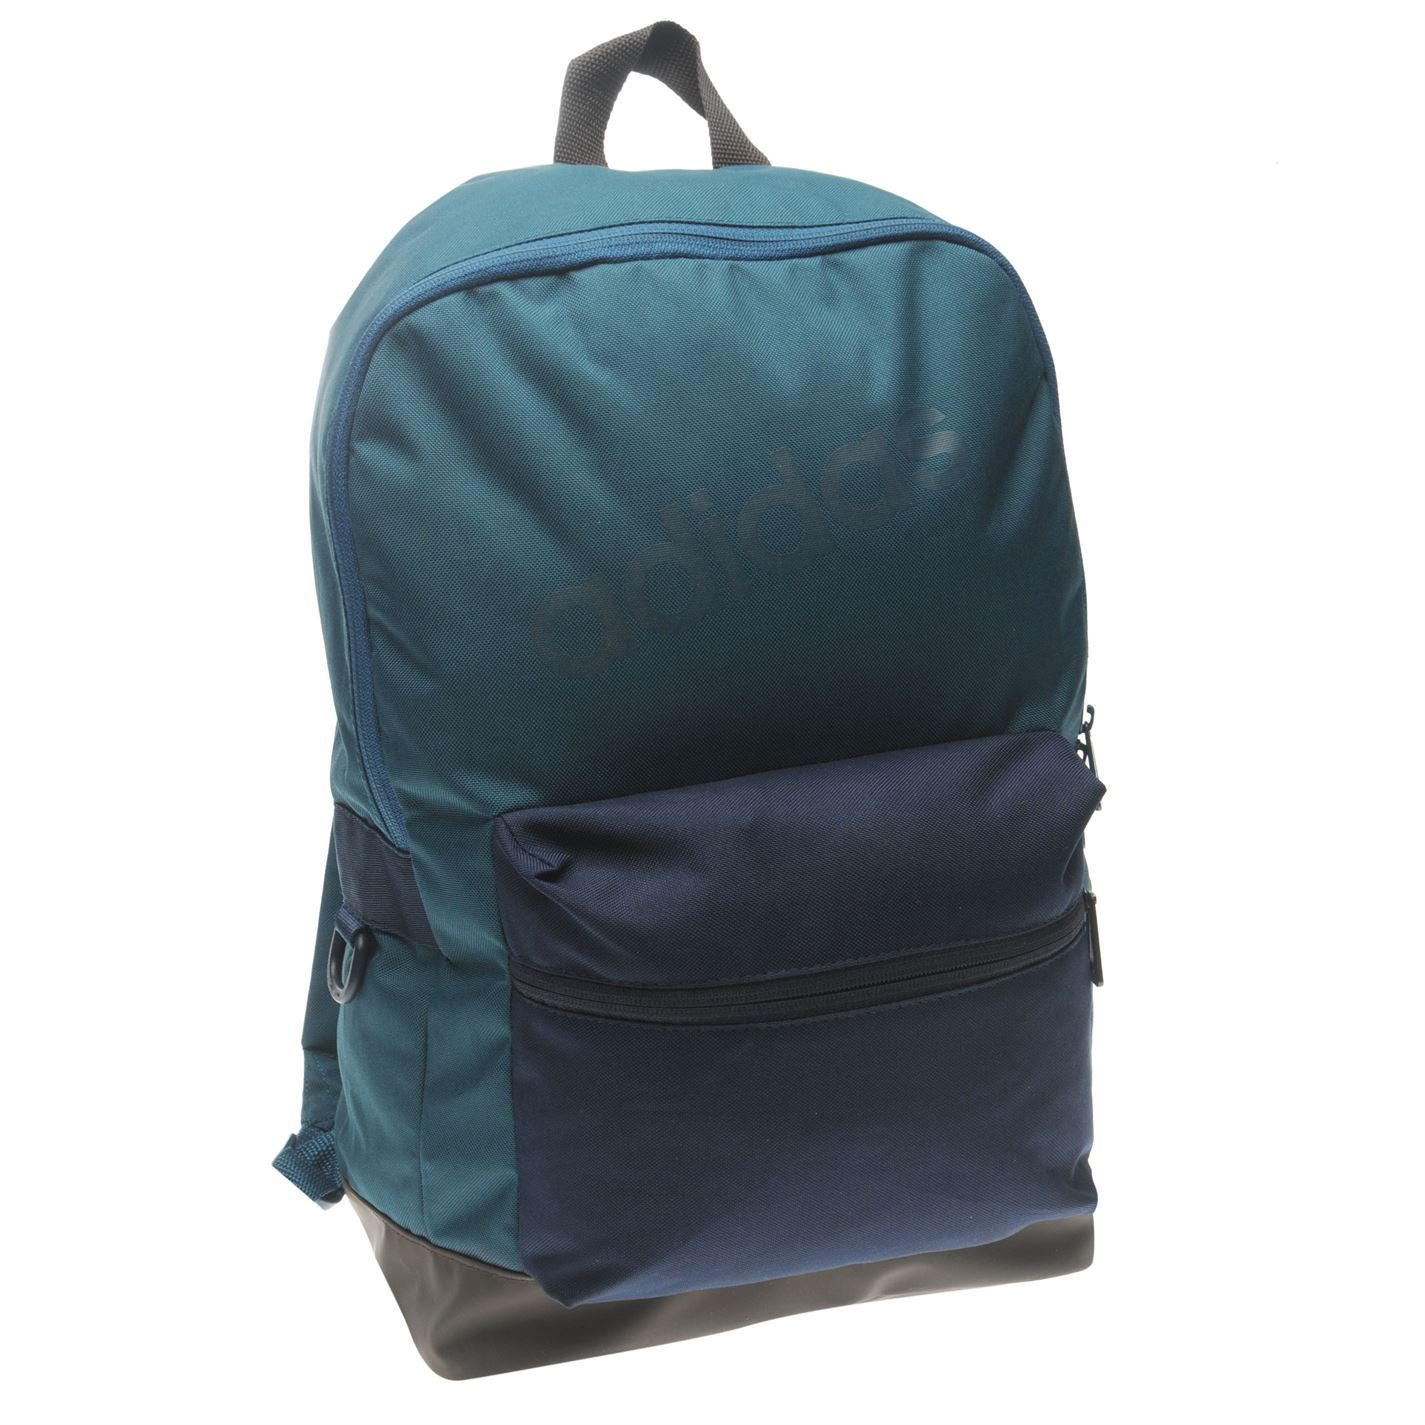 c4e5586902e01 The adidas Daily Backpack is designed with a large zip up compartment with  internal pouch, a zip pocket to the front and two side D rings, making it  ideal ...